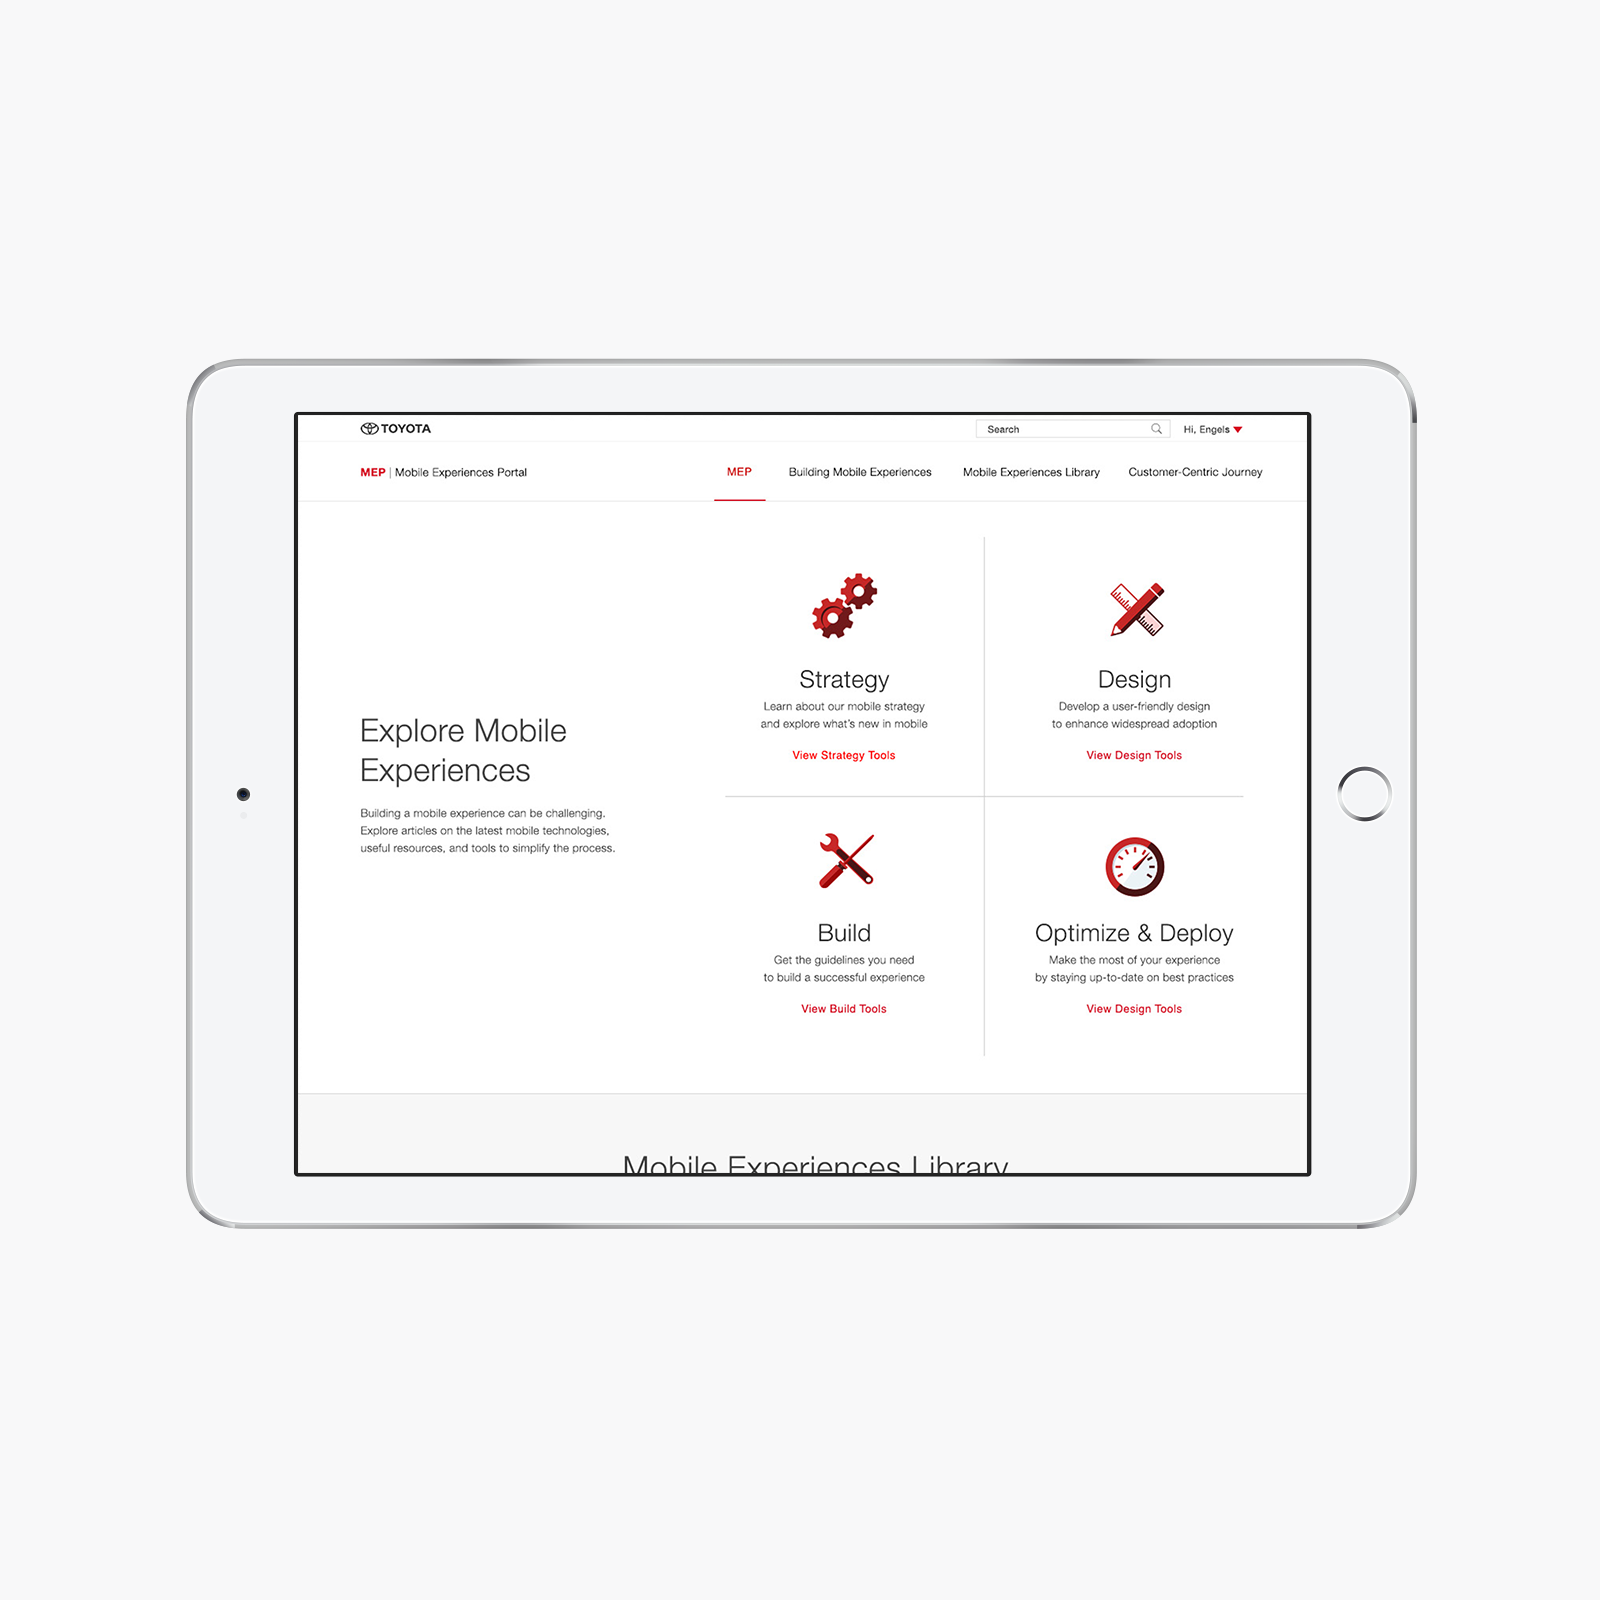 Explore - Provided documentation depending on the stage of the mobile experience development.